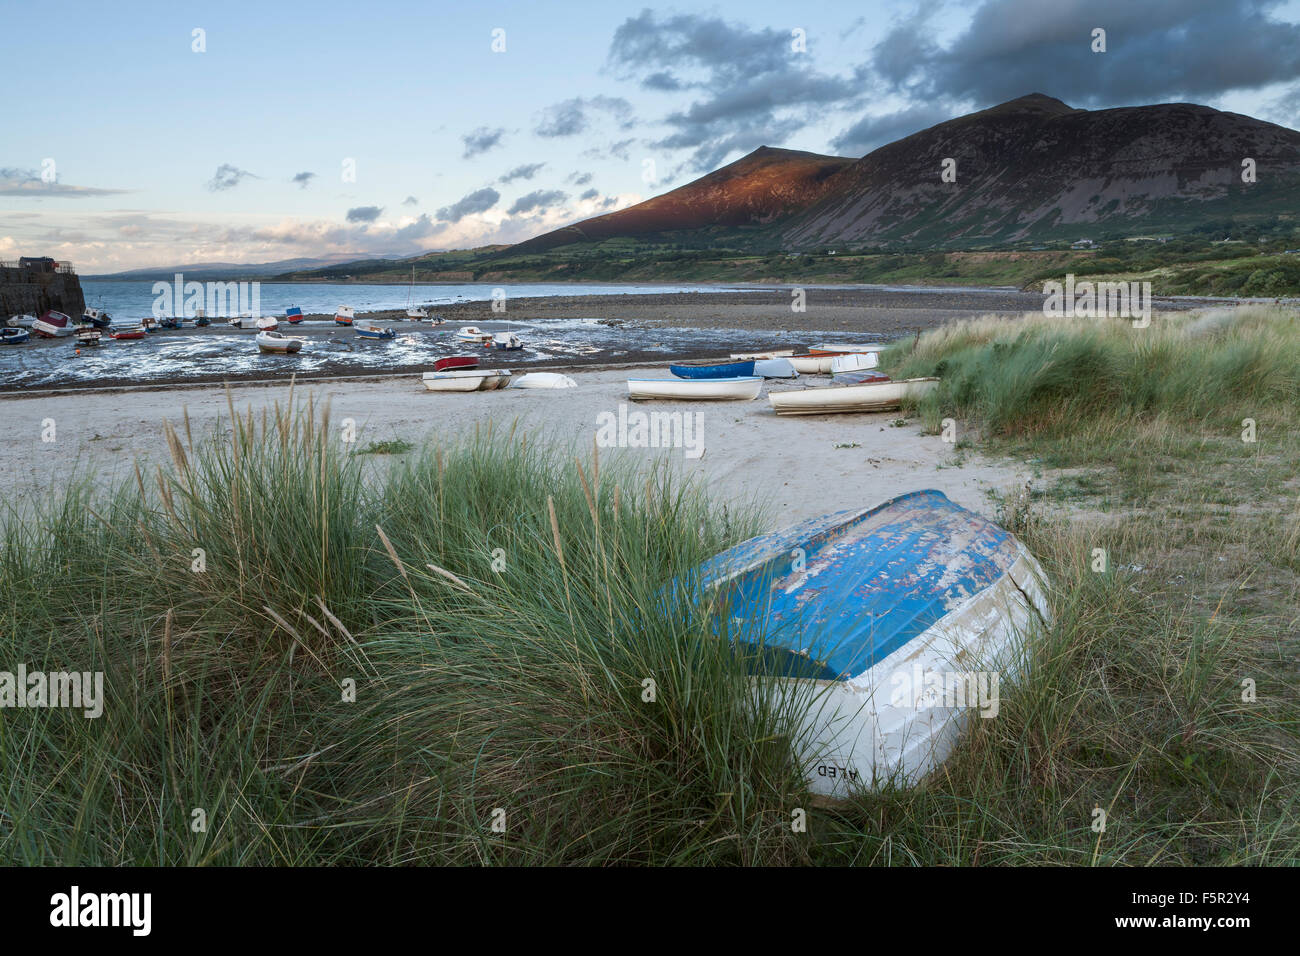 Rowing boats are moored up on the shore of Caernarfon Bay near Trefor, The sun lights up Bwlch Mawr. Stock Photo